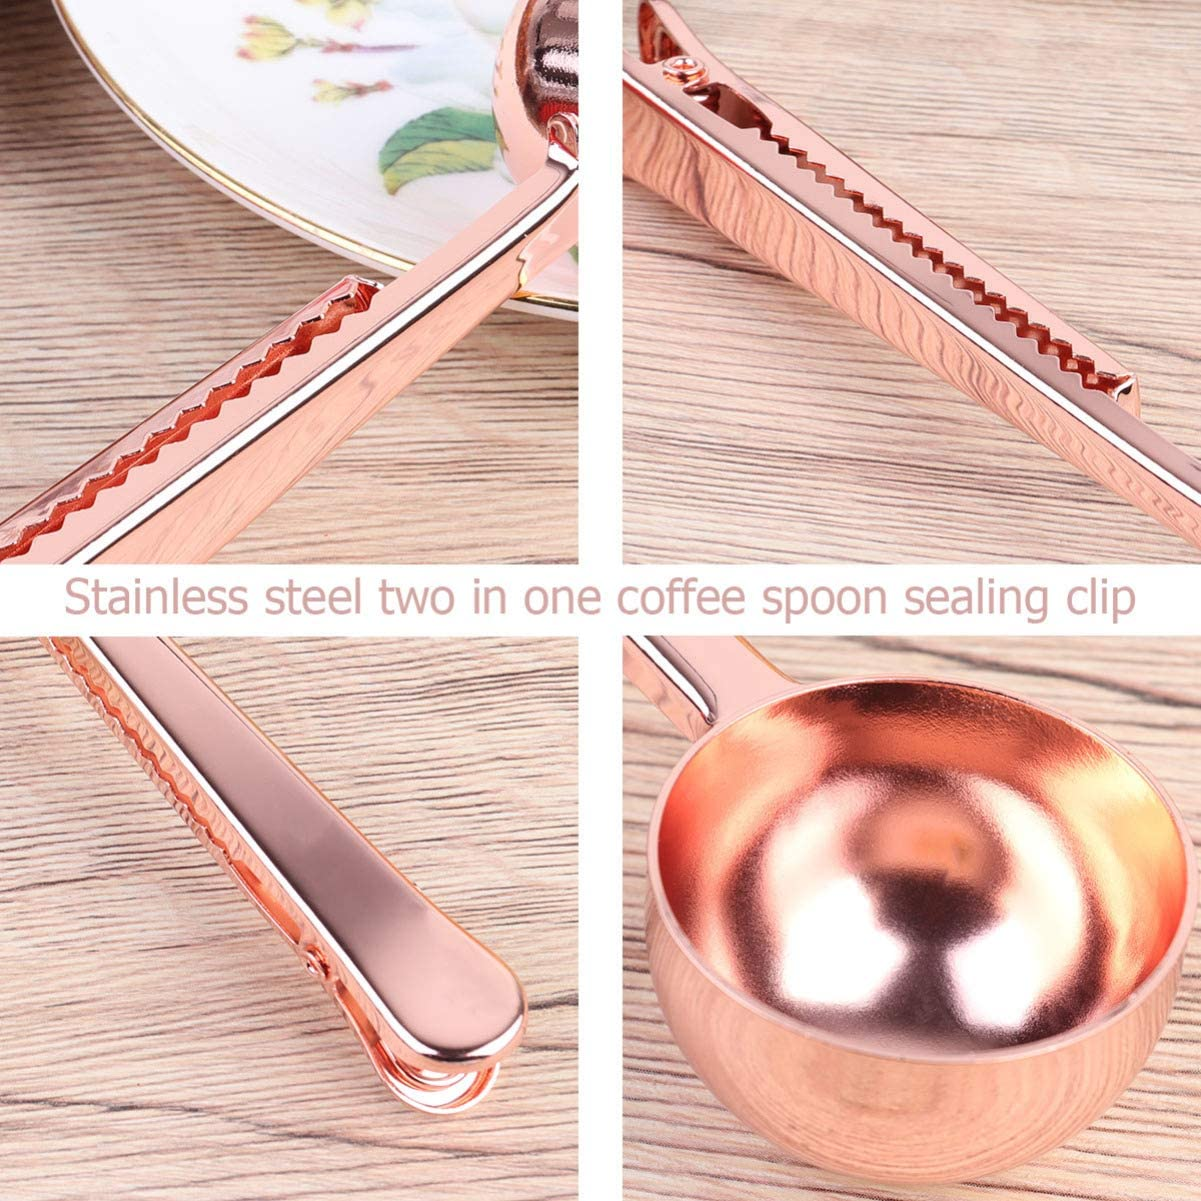 Black TOPBATHY Coffee Scoop Stainless Steel Tea Spoon with Bag Clip Bean Measuring Spoon for Hotel Office Store Home Kitchen